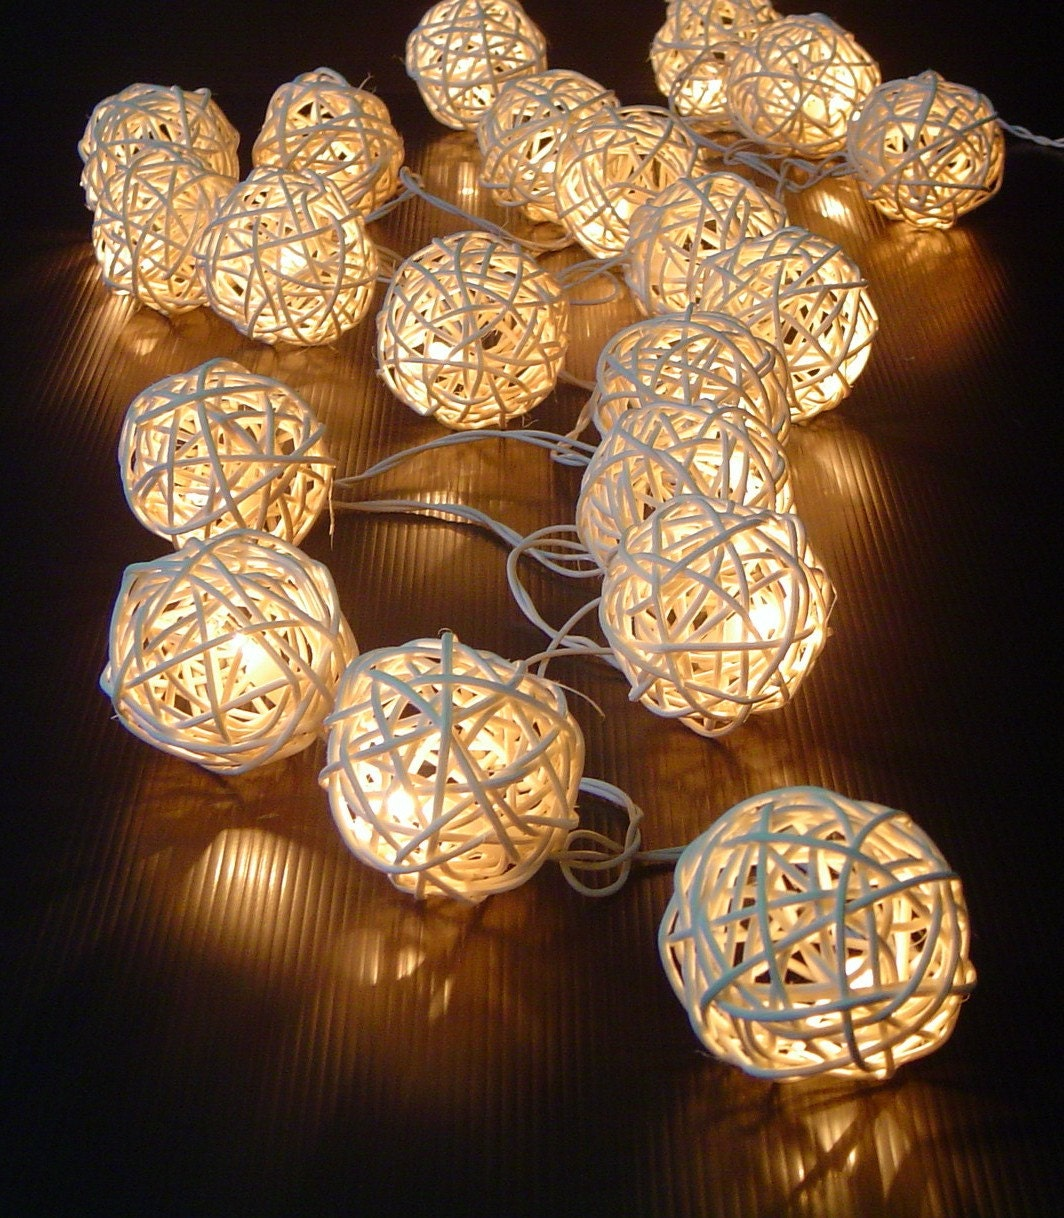 Led patio string lights -  Zoom